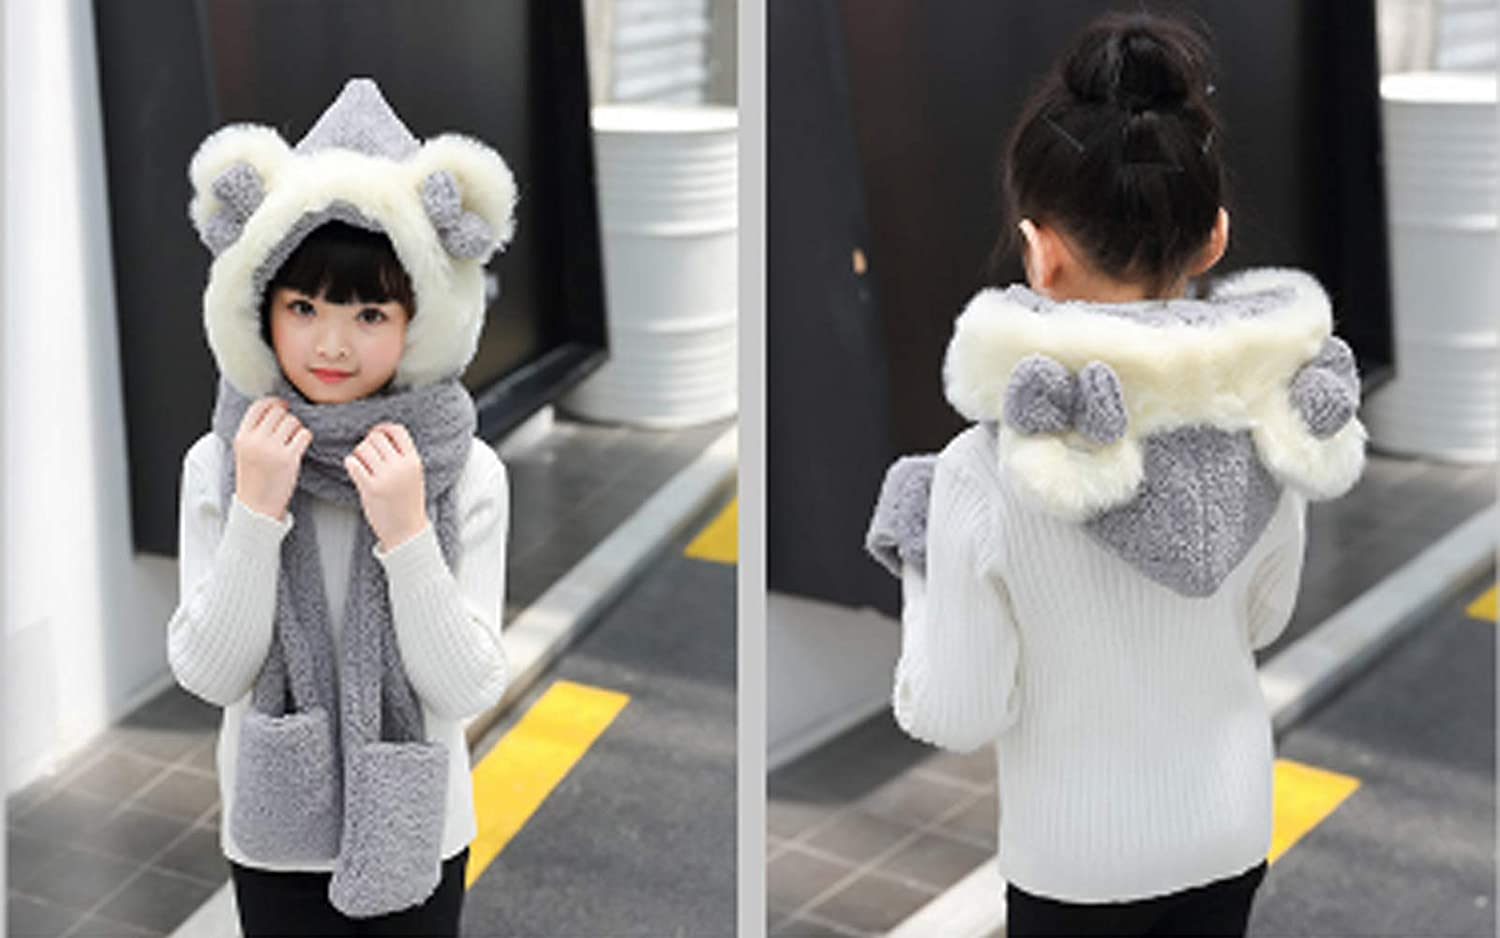 Pocket Kids Girls Cartoon Scarves Hat Gloves 3-in-1 Set Winter Super Soft Plush Full Hood Cap Warm Thermal Fleece Hats with Ears Scarf Christmas Gifts for Boys and Girls